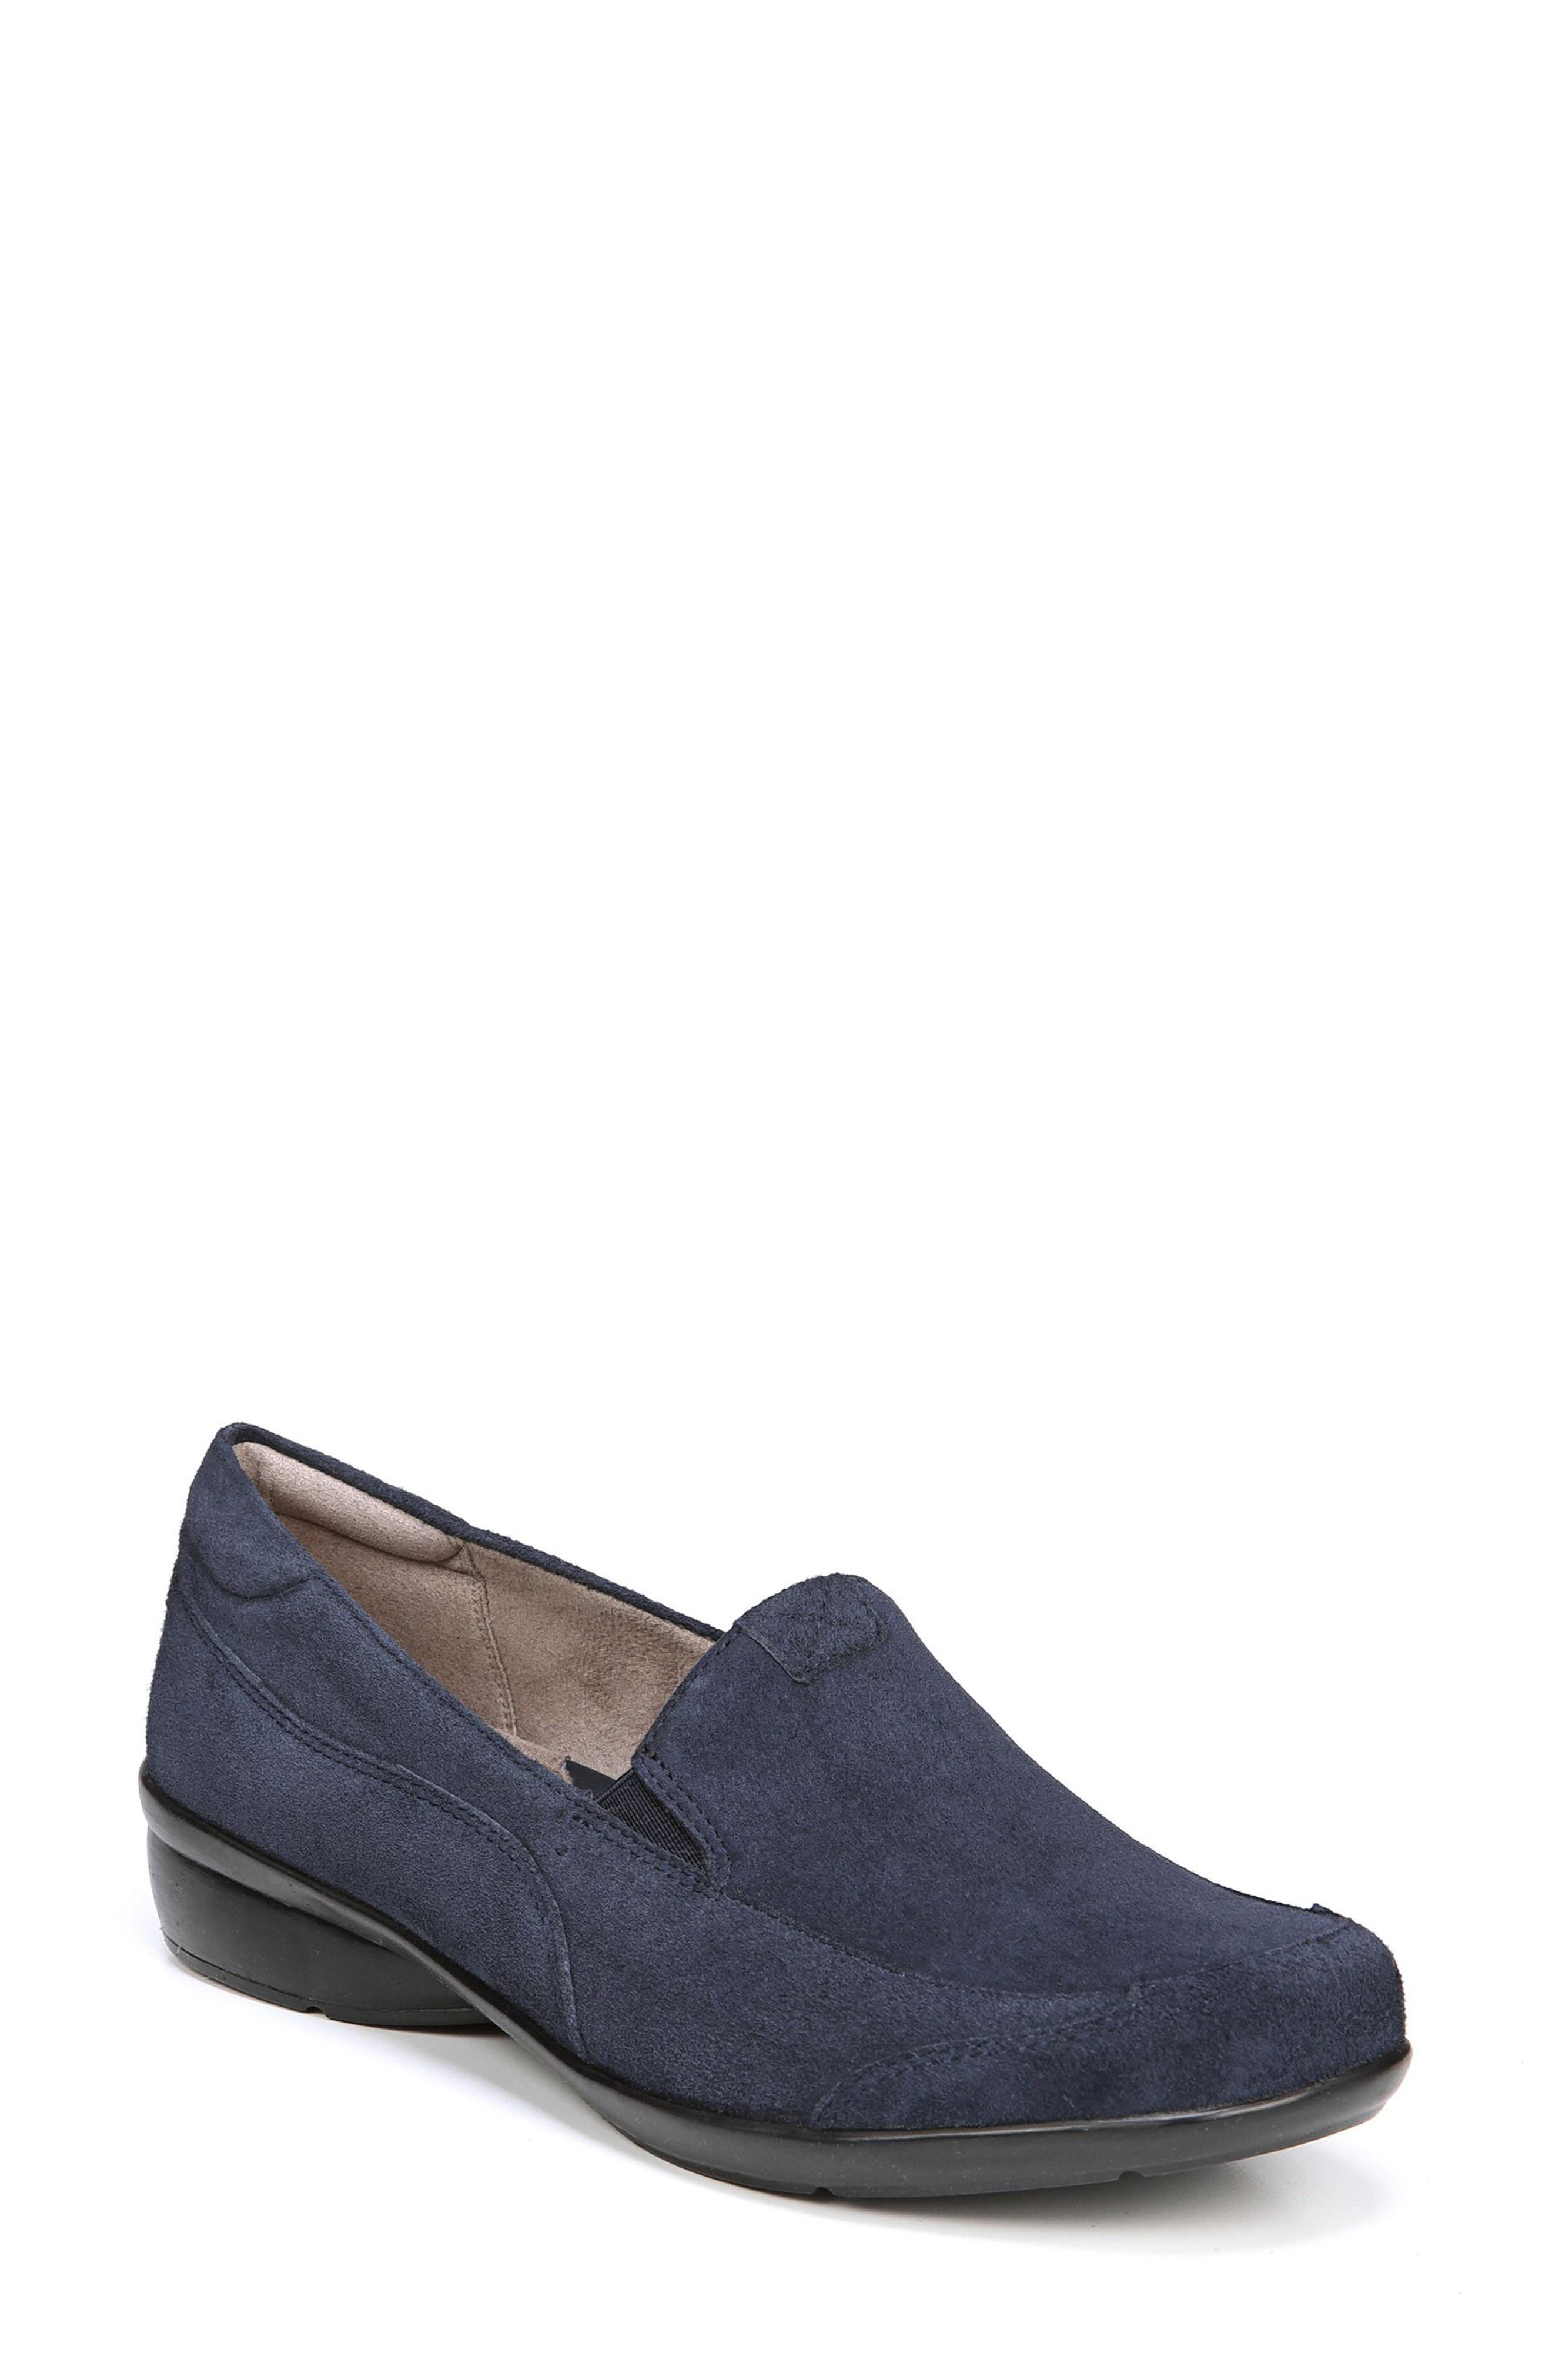 'Channing' Loafer,                         Main,                         color, Navy Suede